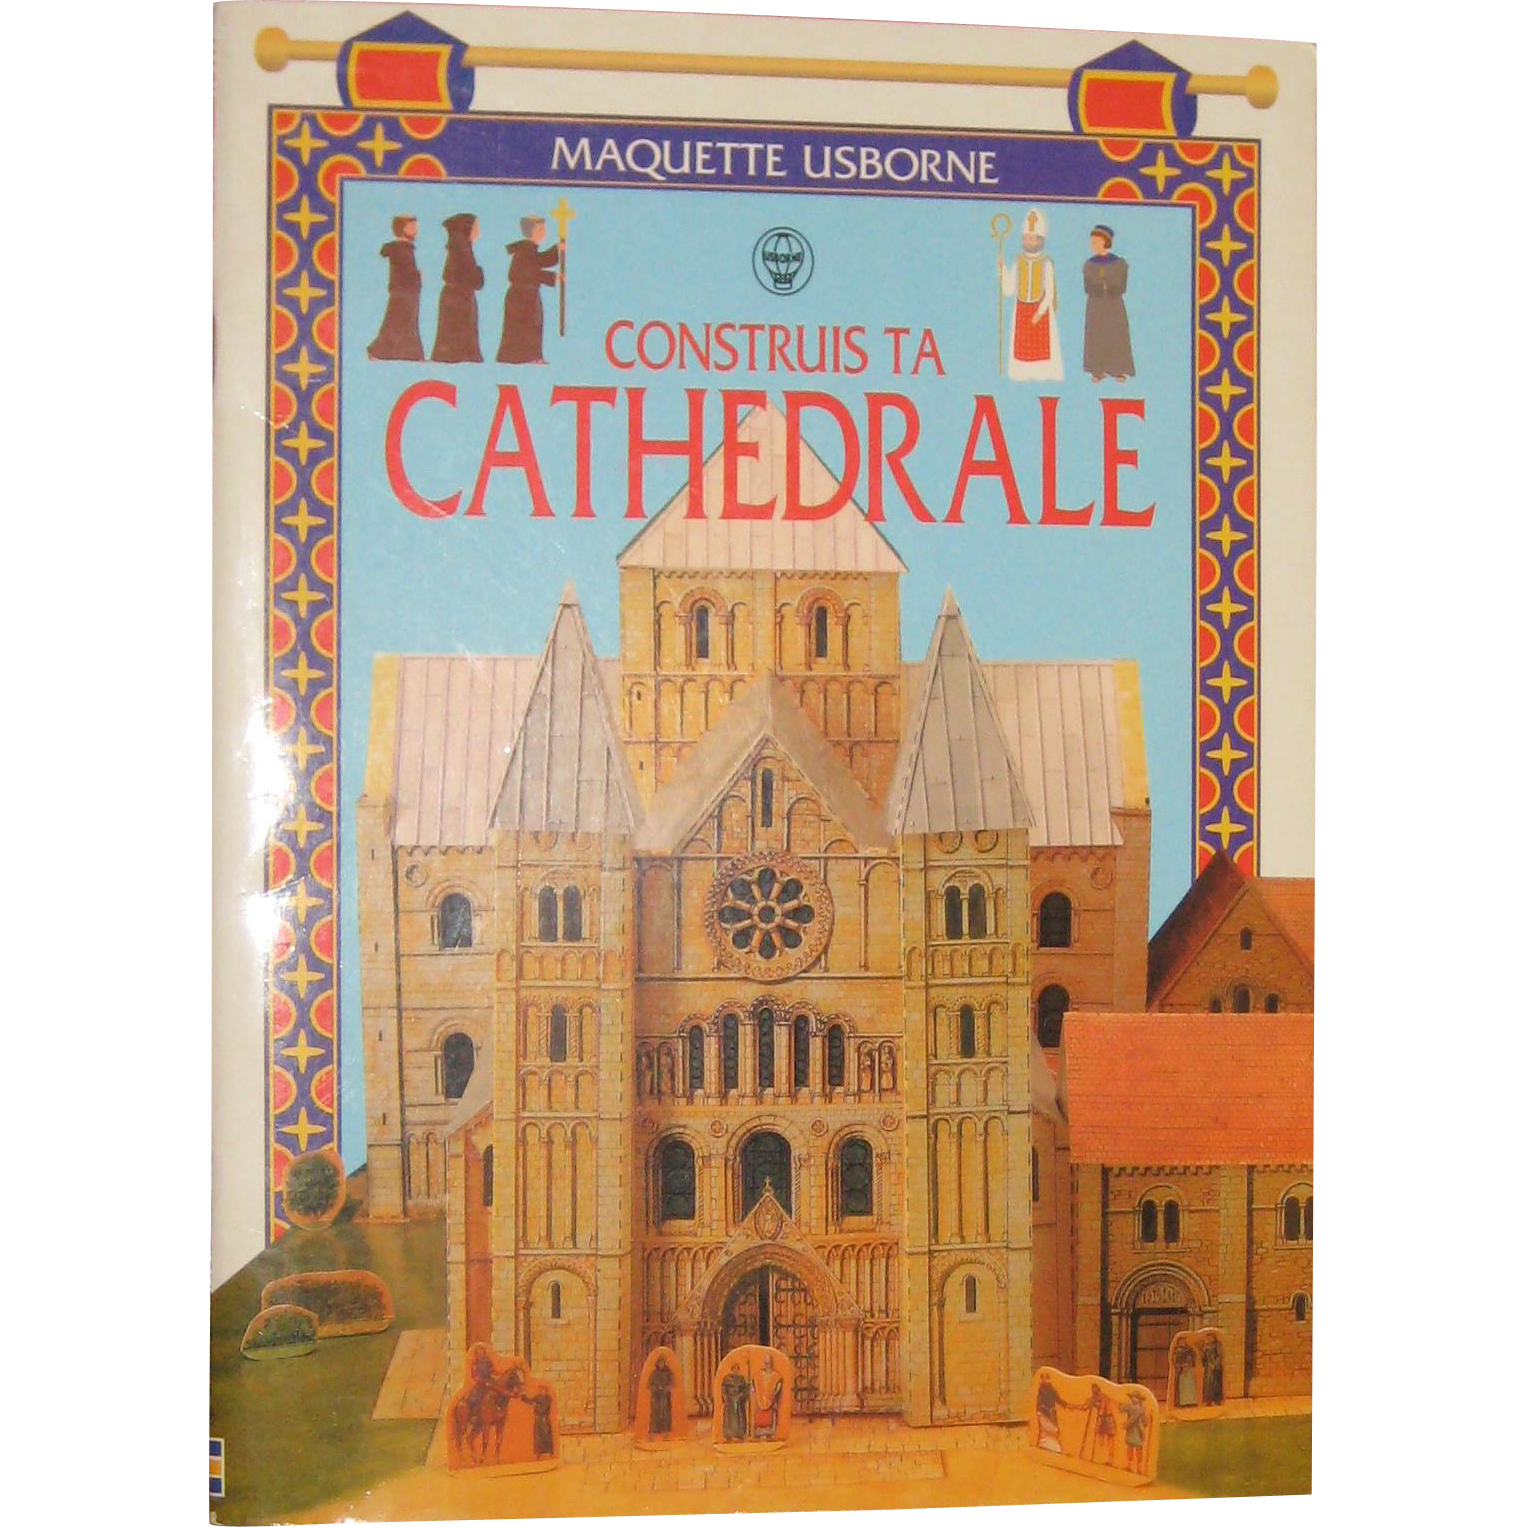 Maquette Usborne - Construis Ta Cathedrale Make This Cathedral) - Construction Book in French